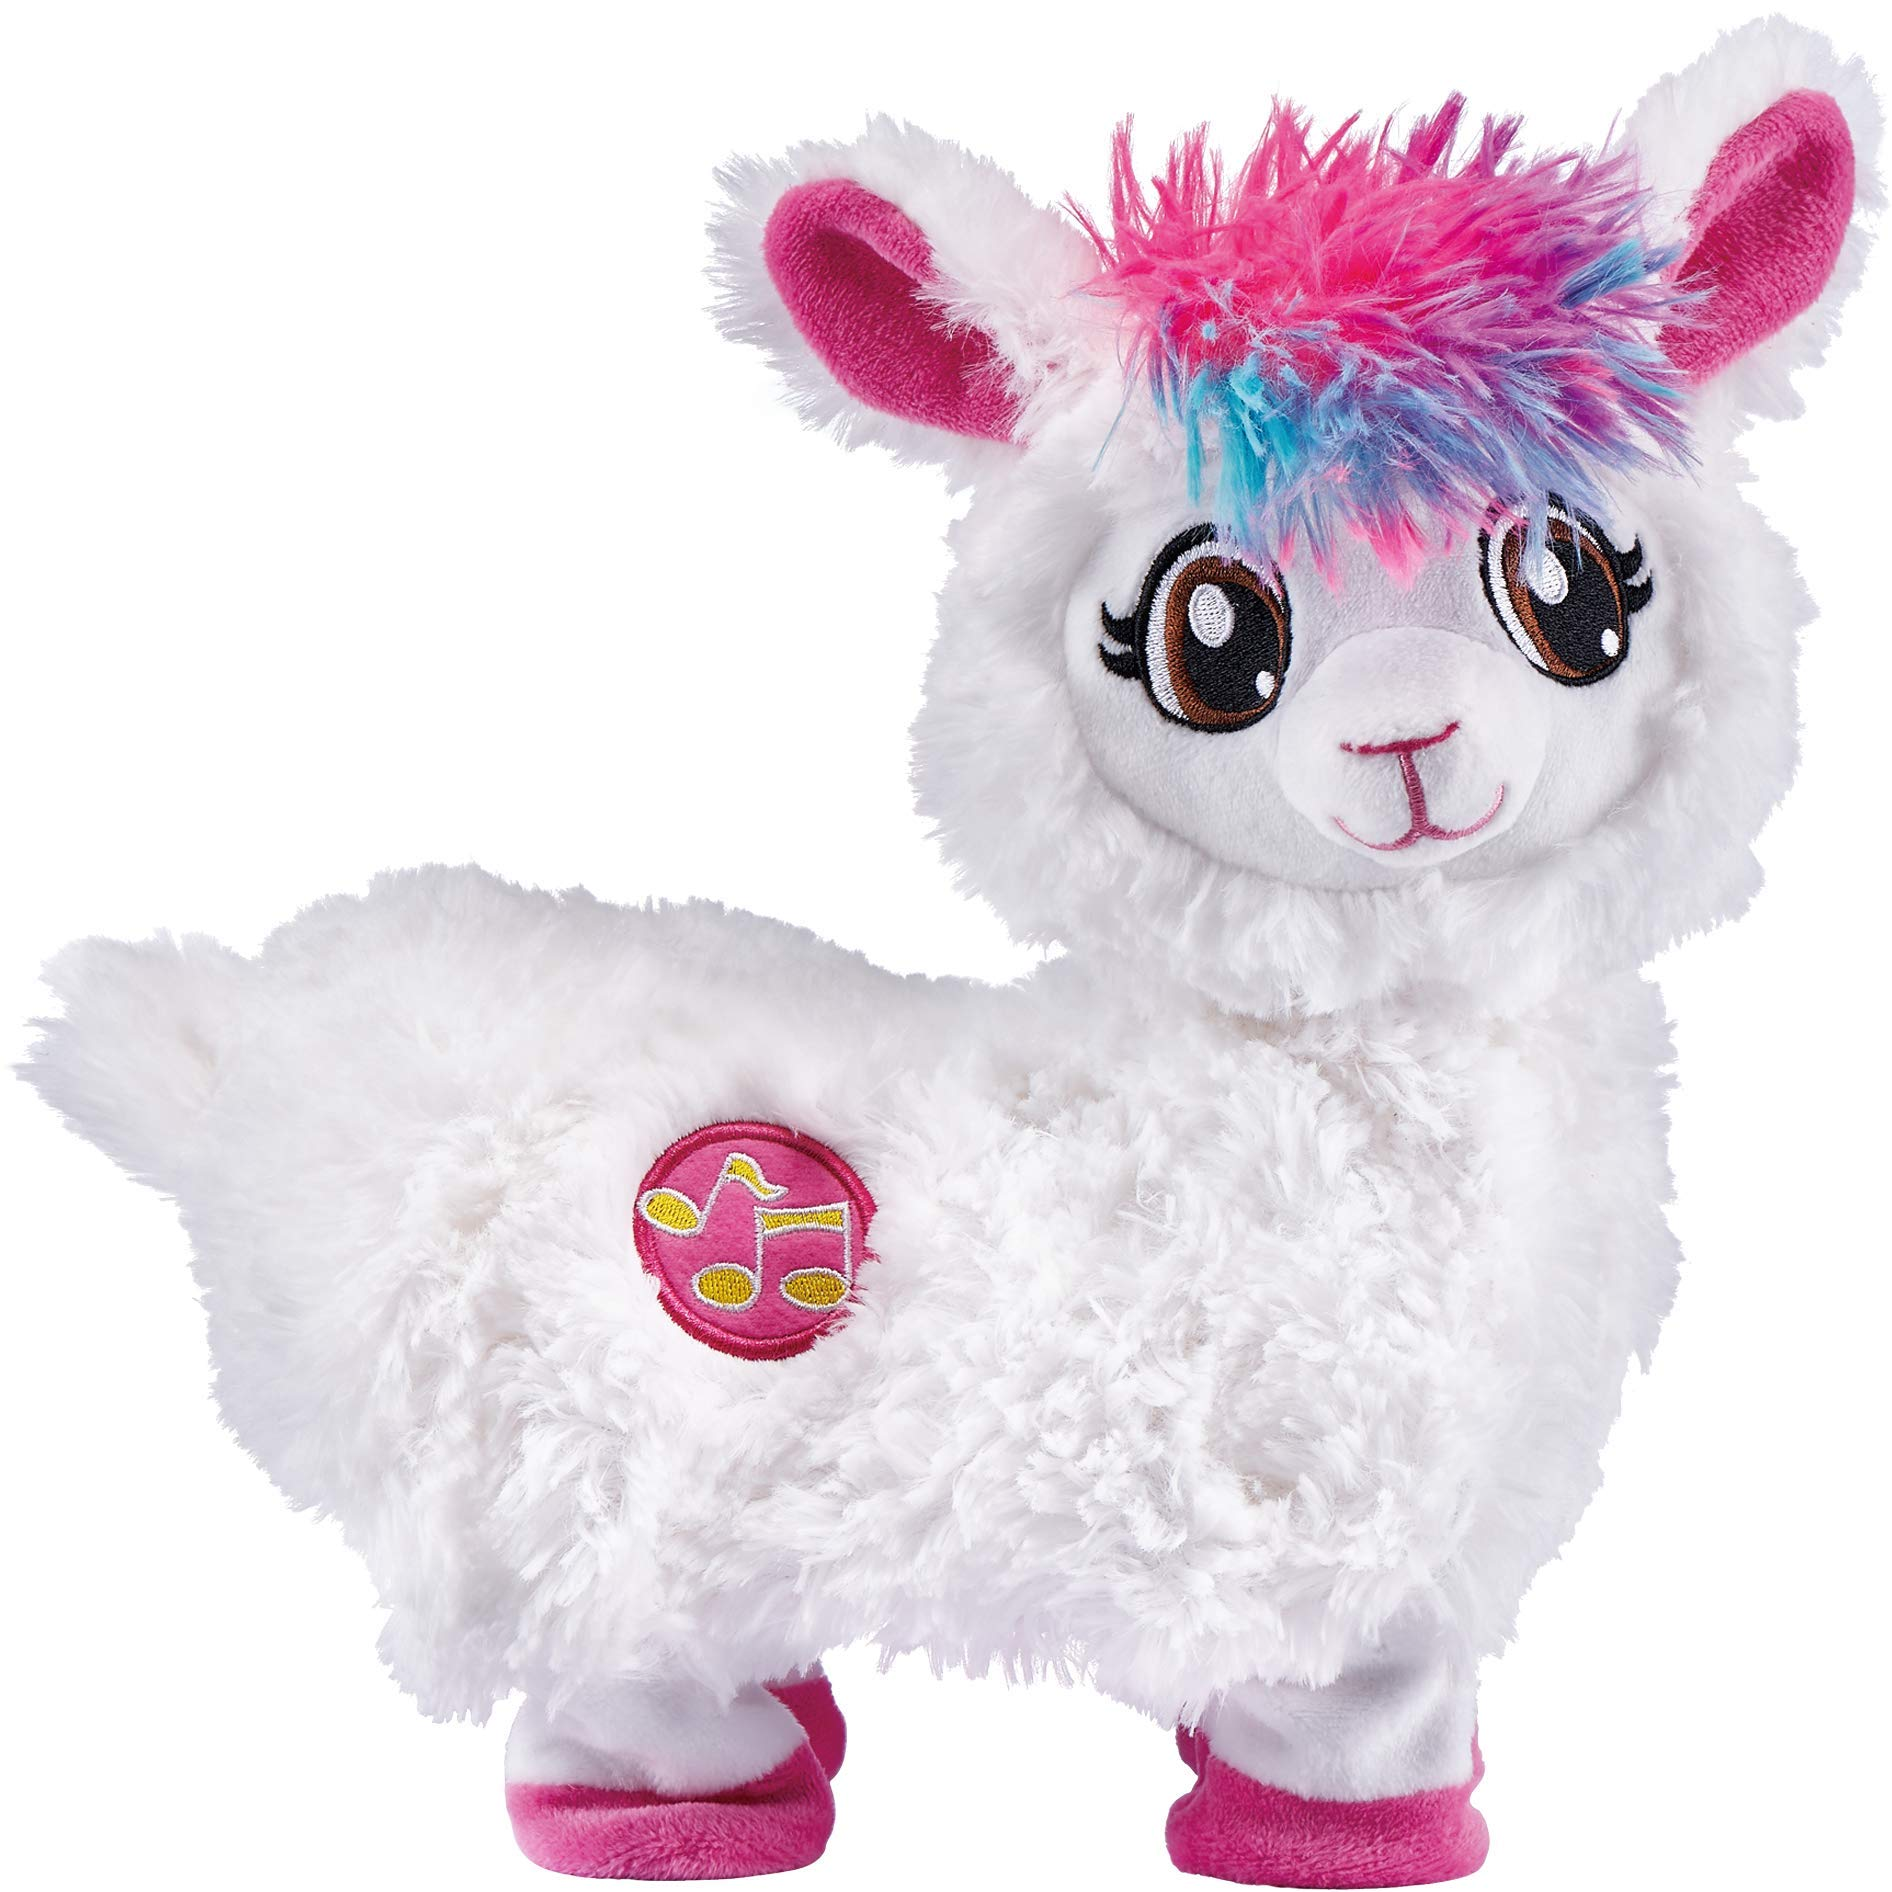 Pets Alive Boppi The Booty Shakin Llama Battery-Powered Dancing Robotic Toy by Zuru by Pets Alive (Image #7)